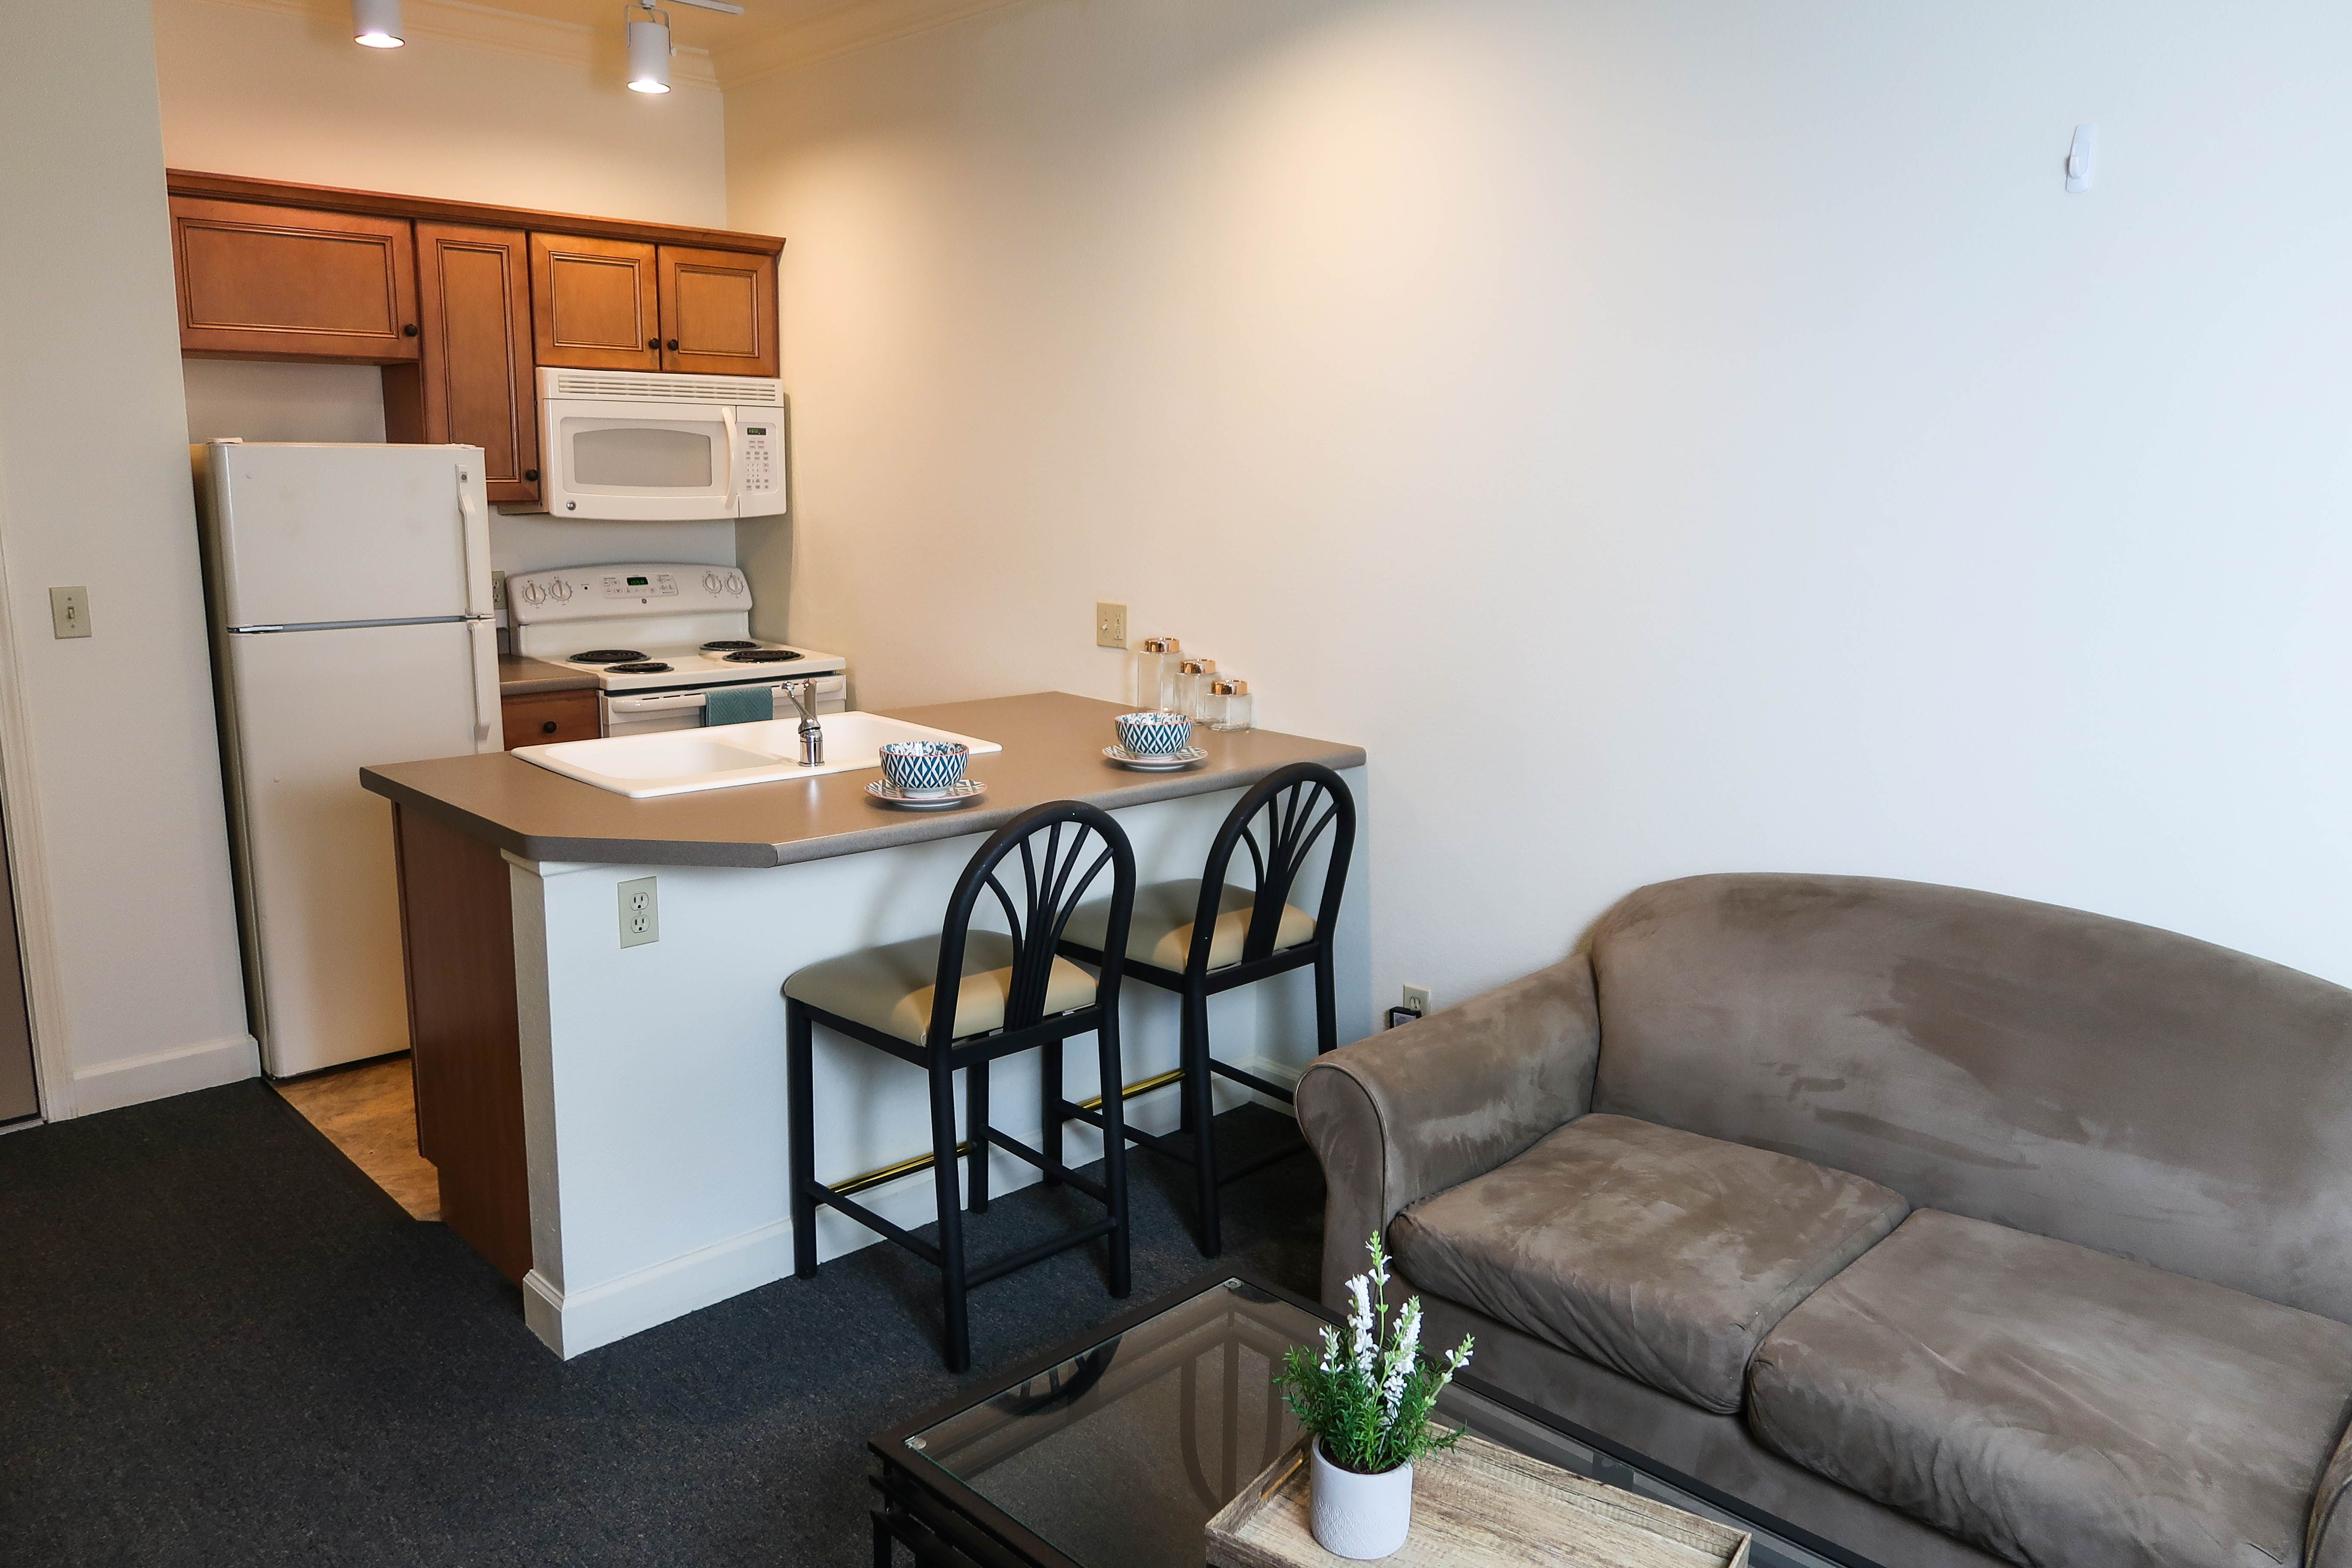 700 S Gregory St University Of Illinois One Bedroom Apartment 1 Bedroom Apartment Small House Living